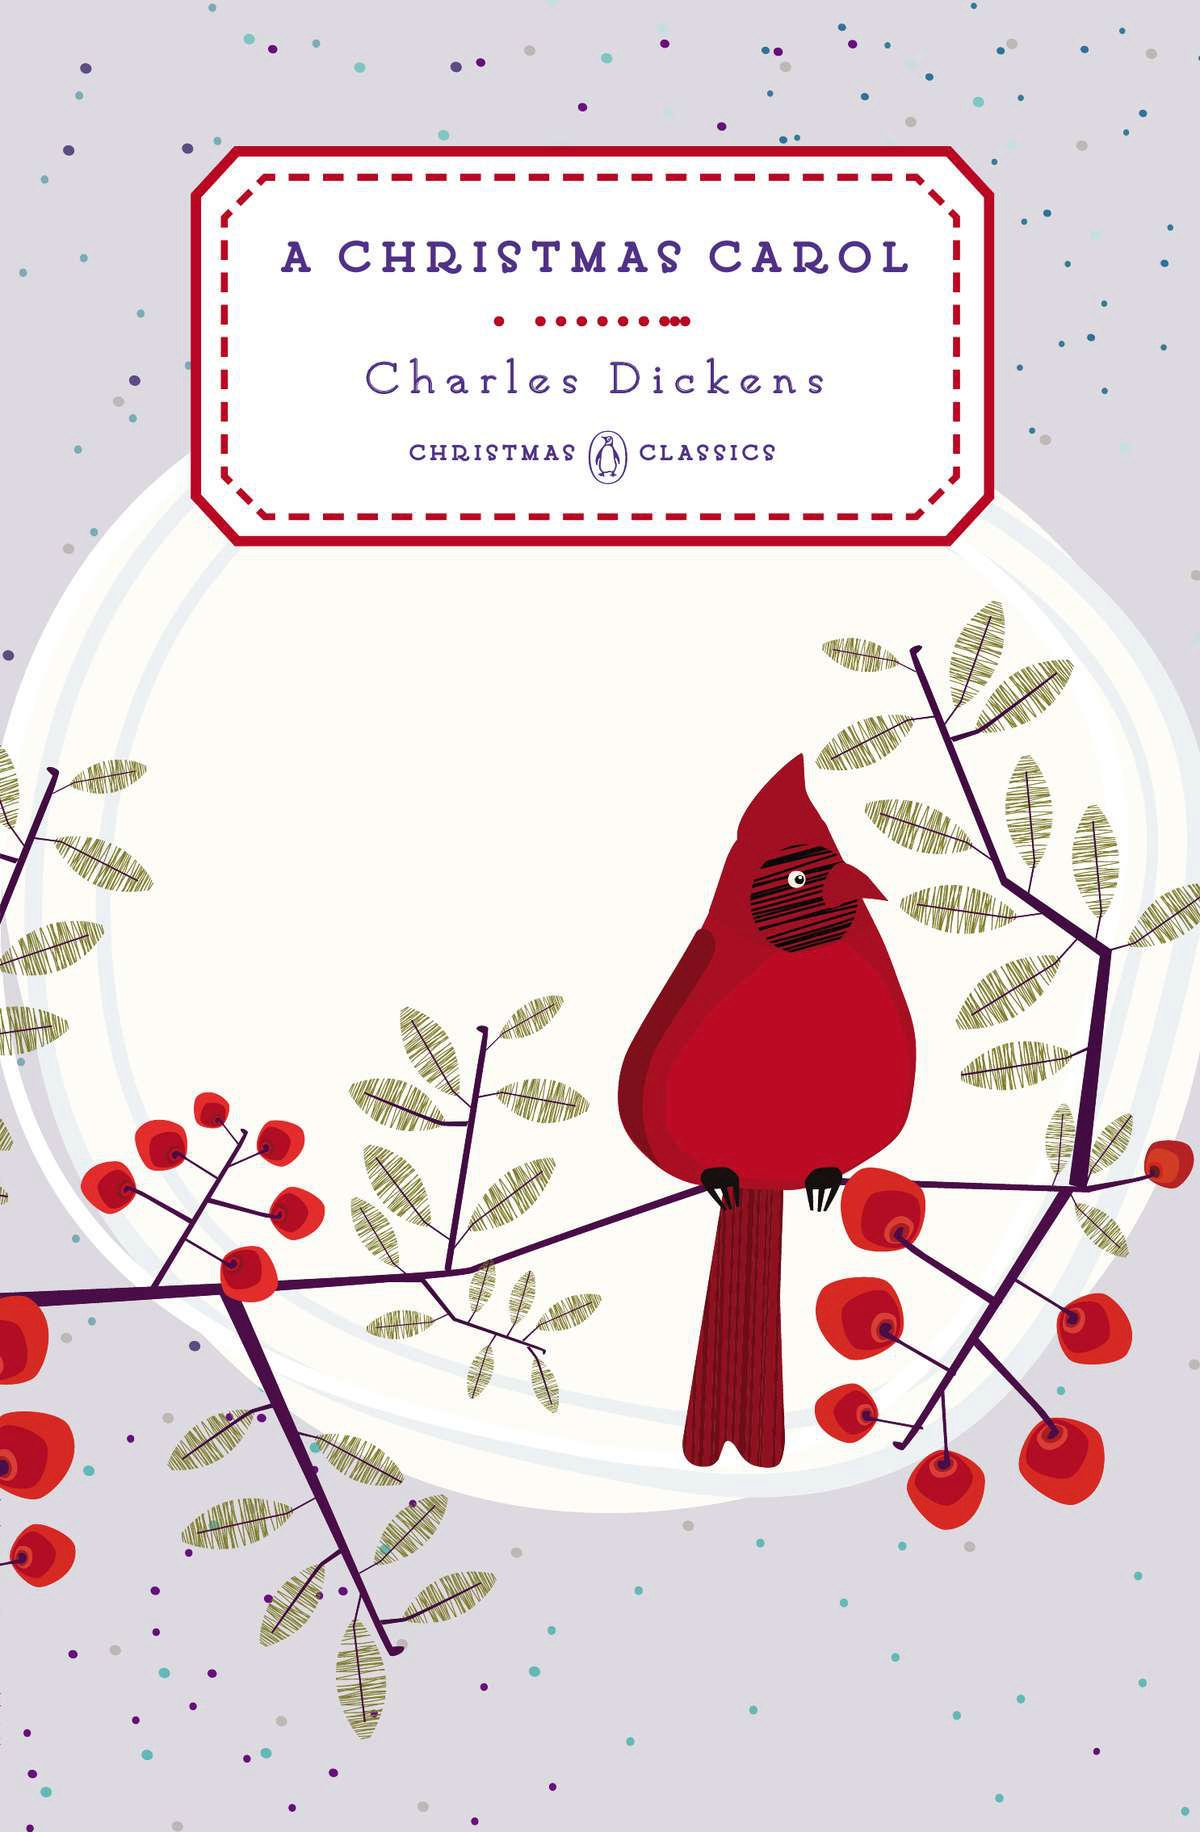 a christmas carol by charles dickens - penguin christmas classics